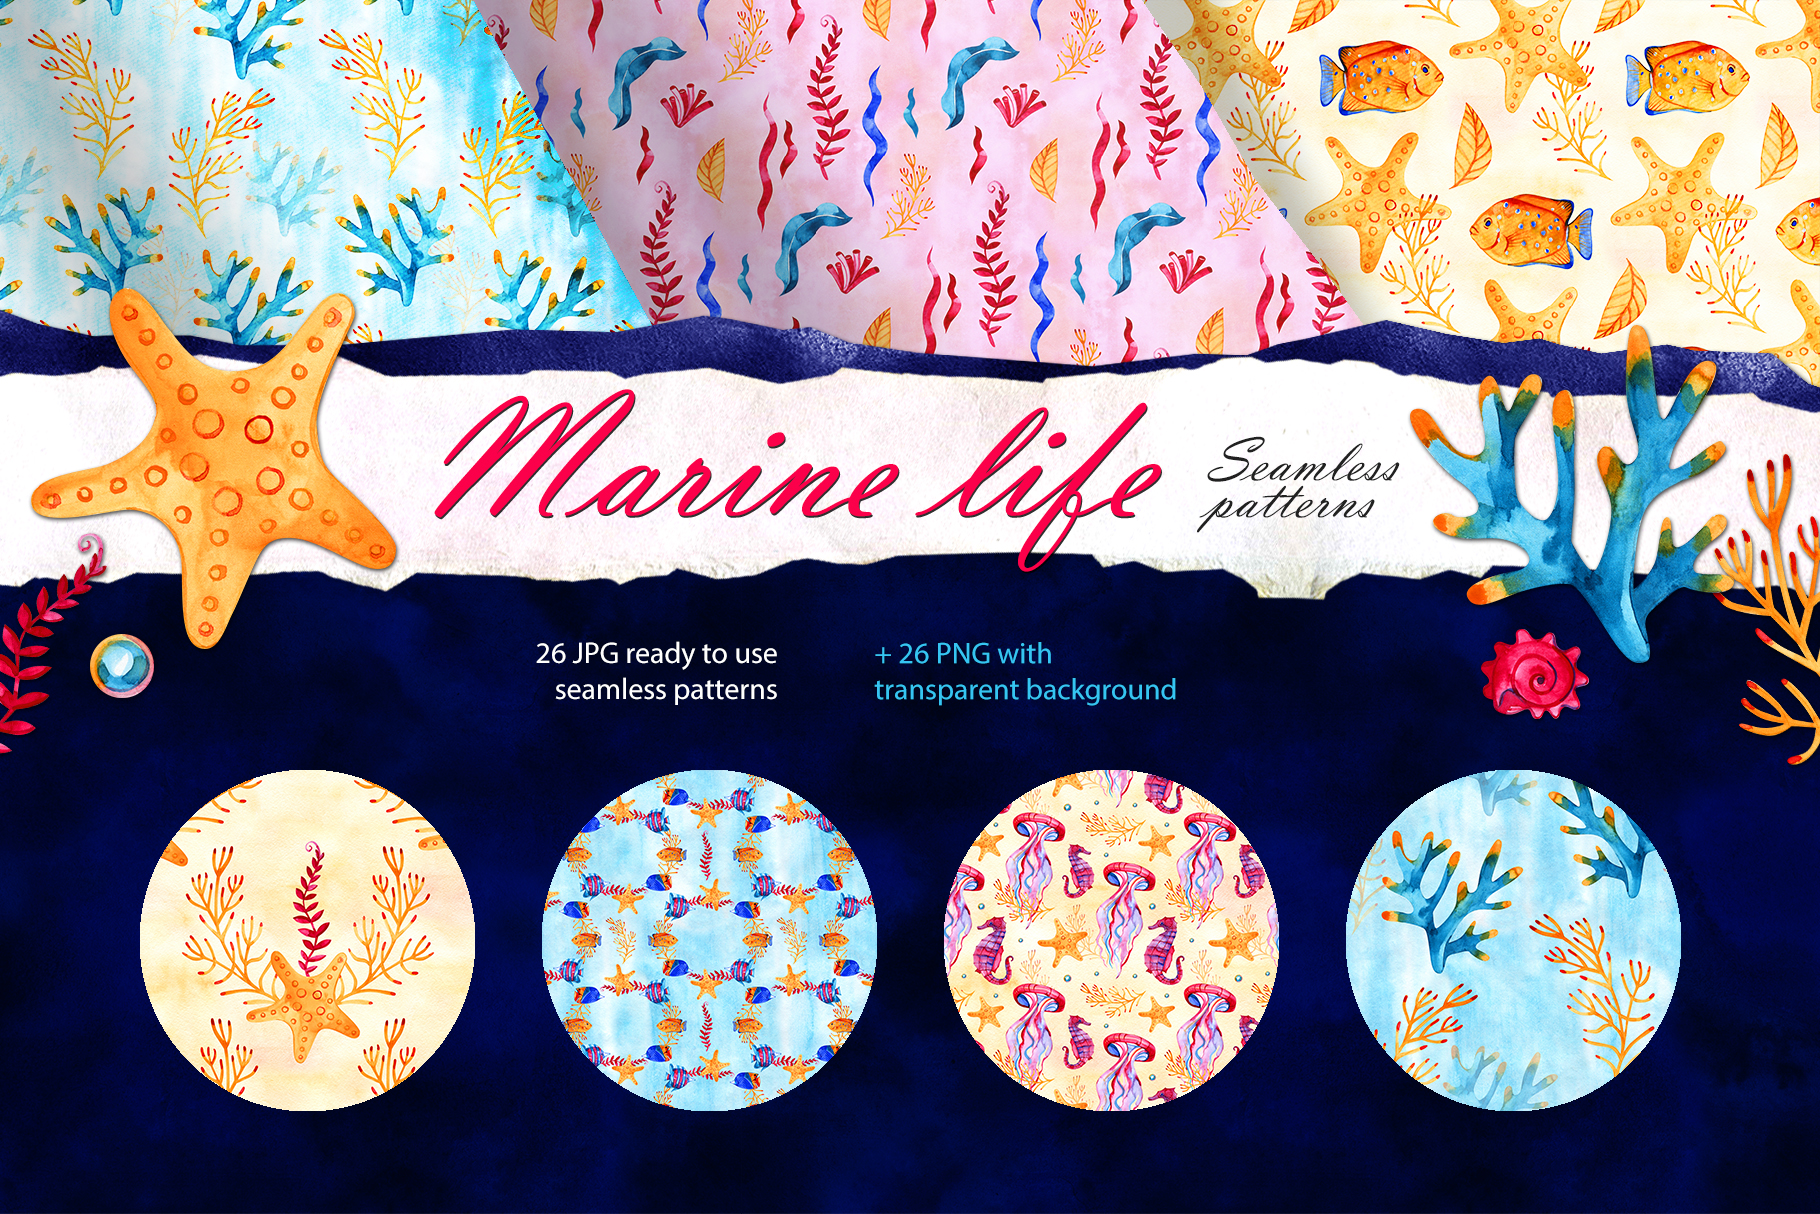 Watercolor marine life patterns example image 1